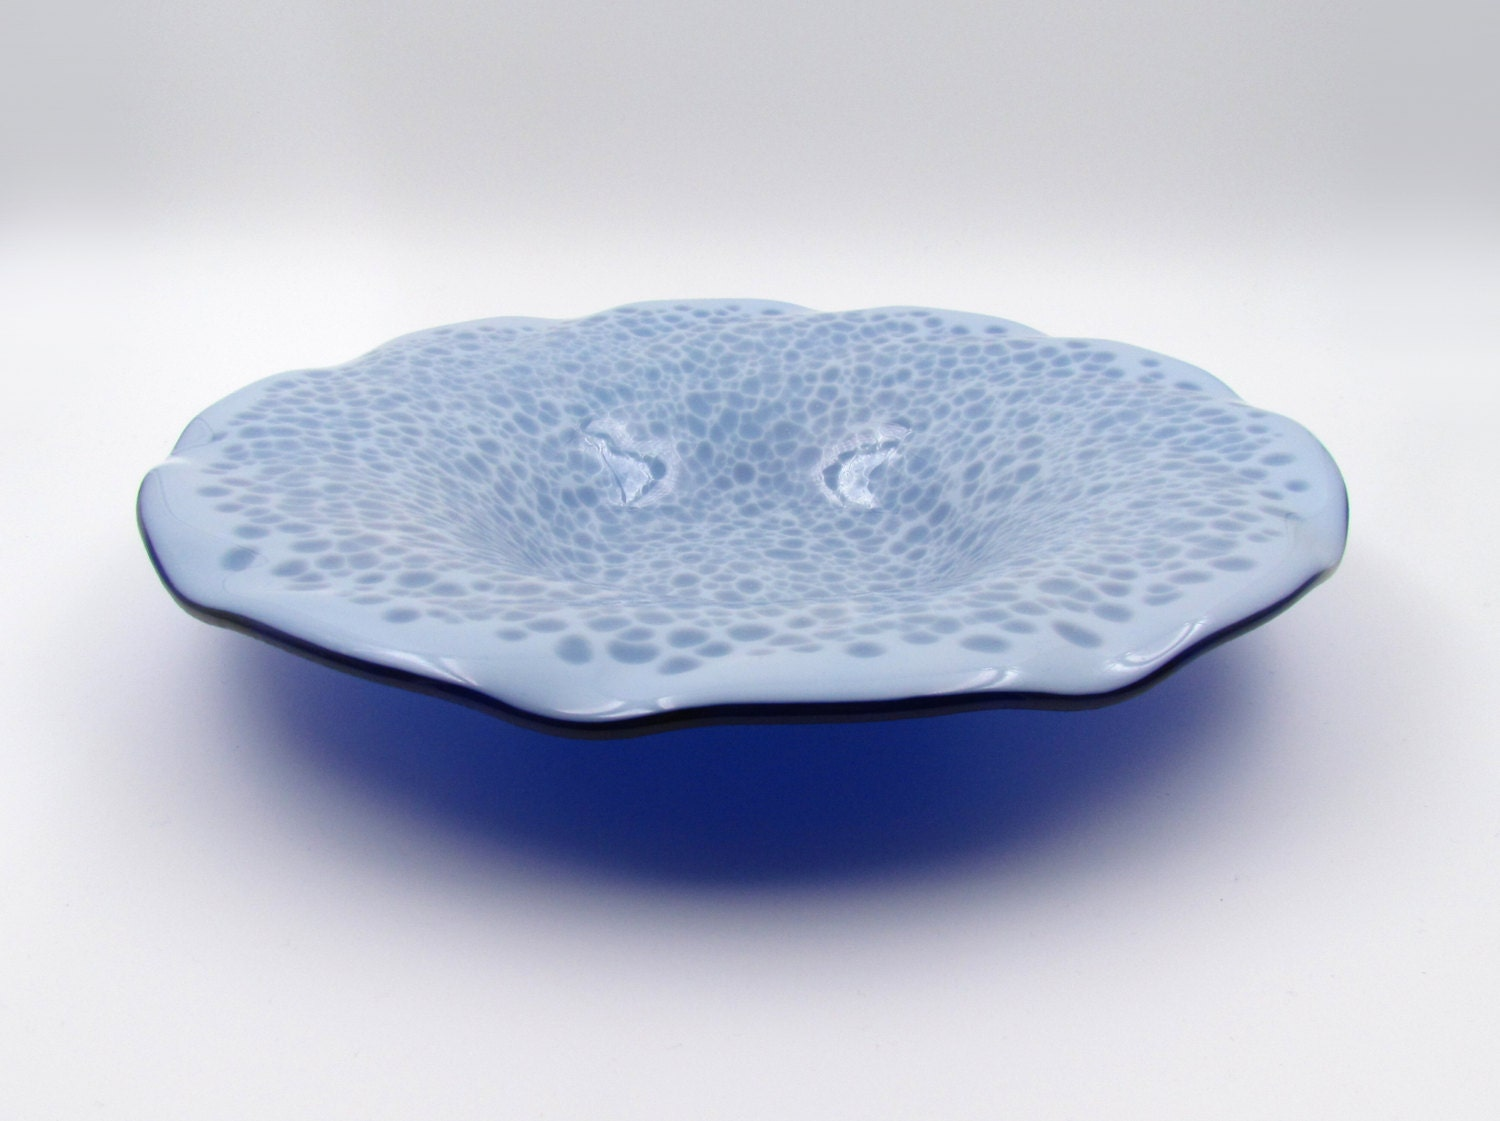 large glass bowl white and blue bowl fused glass bowl large glass platter - Decorative Glass Bowls